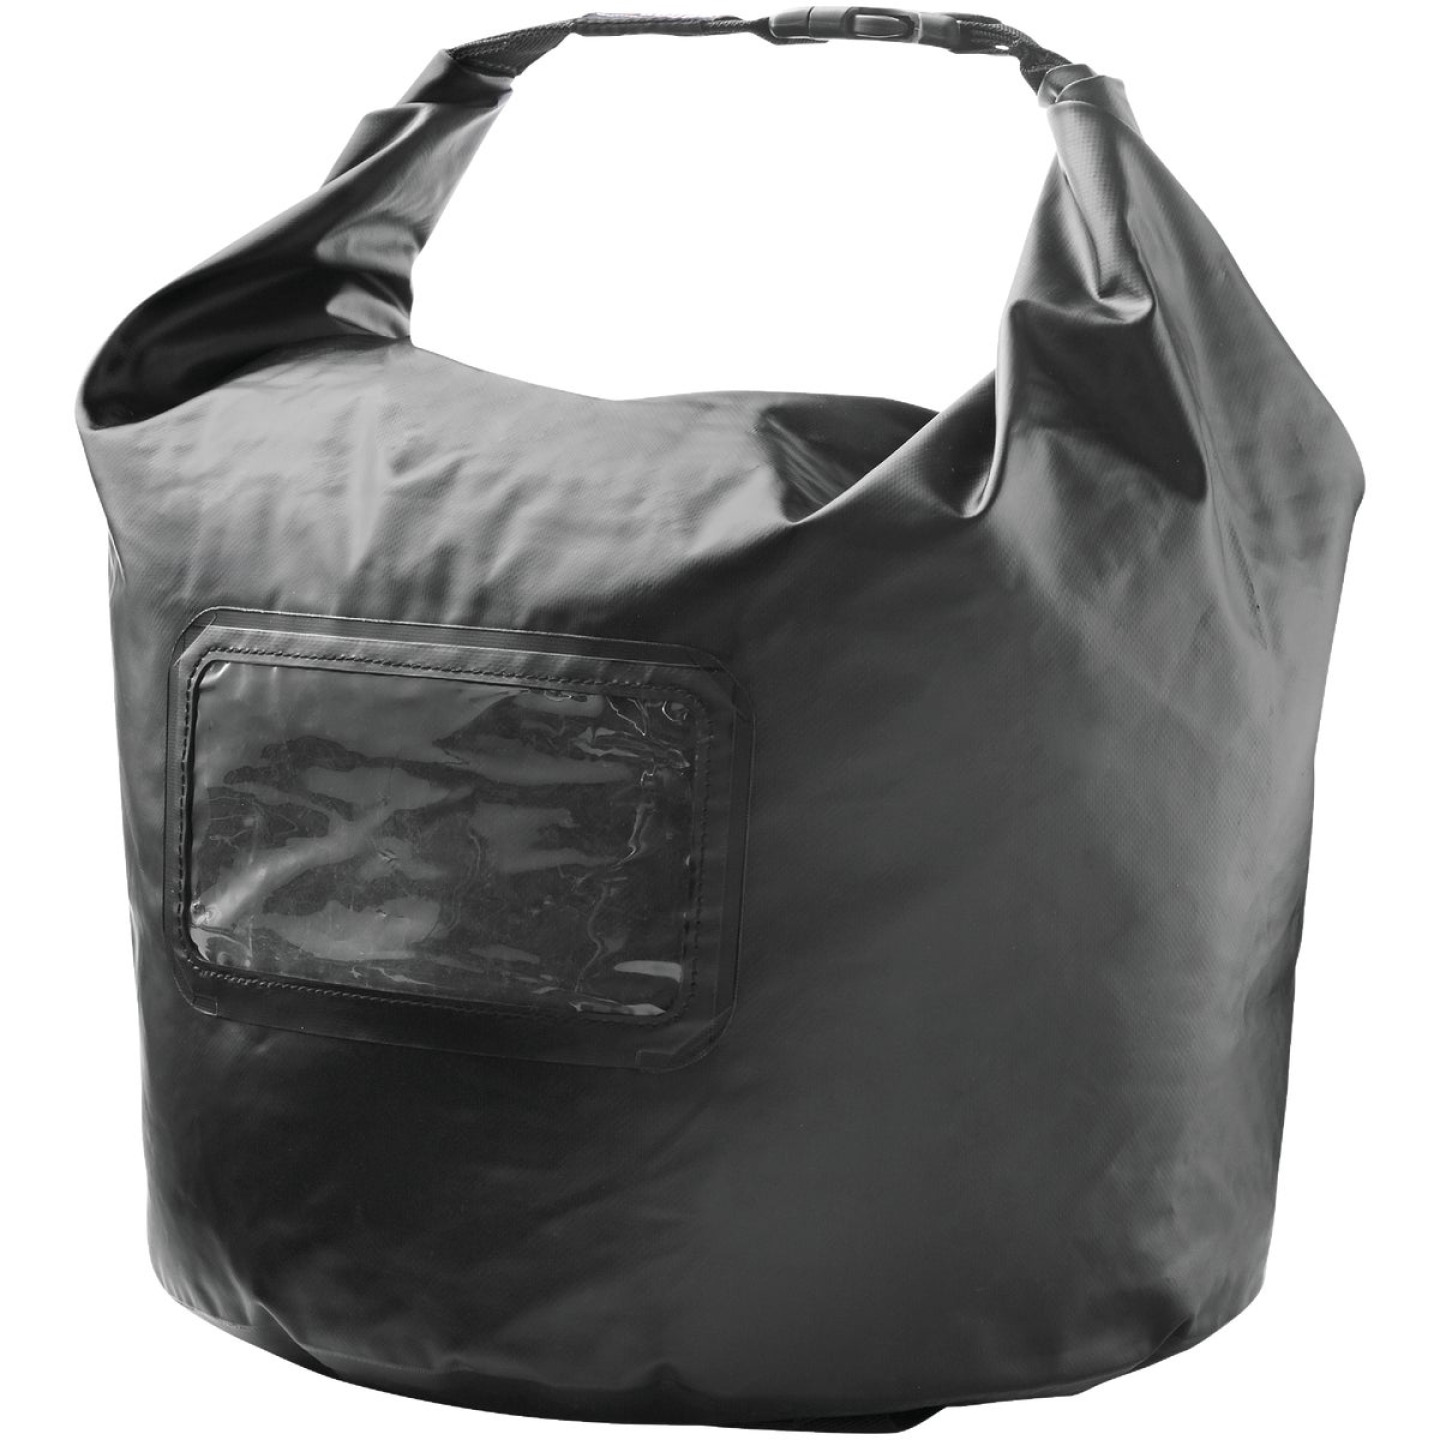 Weber 20 Lb. Capacity 11.8 In. W. x 18.8 In. L. Polyester Pellet/Charcoal Storage Bag Image 2